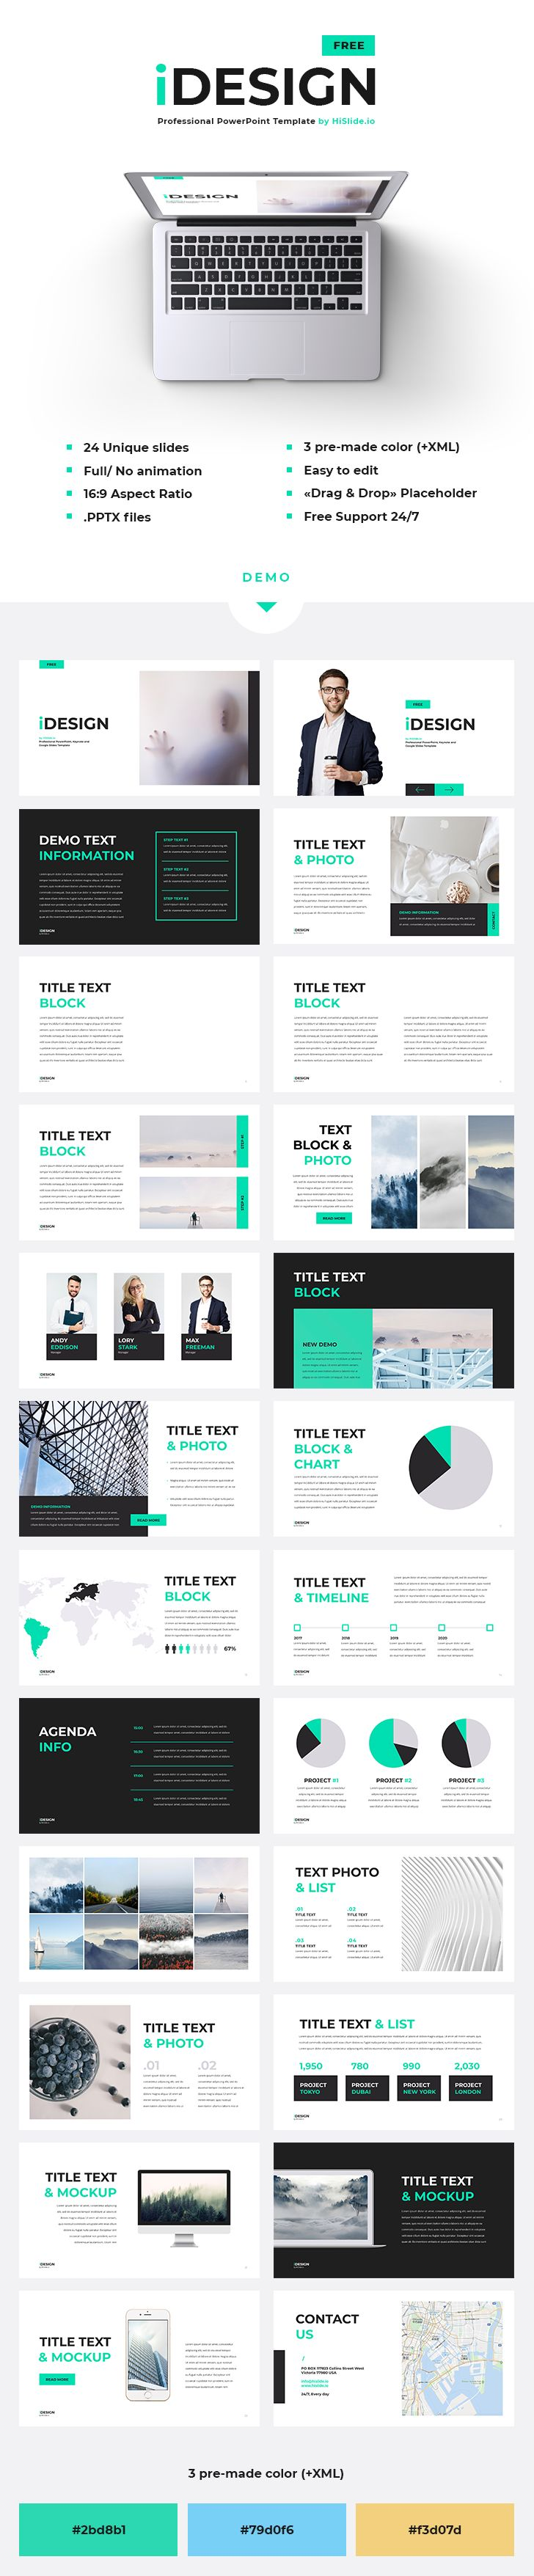 7 best free powerpoint templates on behance images on pinterest idesign free powerpoint template 24 unique slides 3 pre made color xml files full no animation easy to edit drag drop placeholder toneelgroepblik